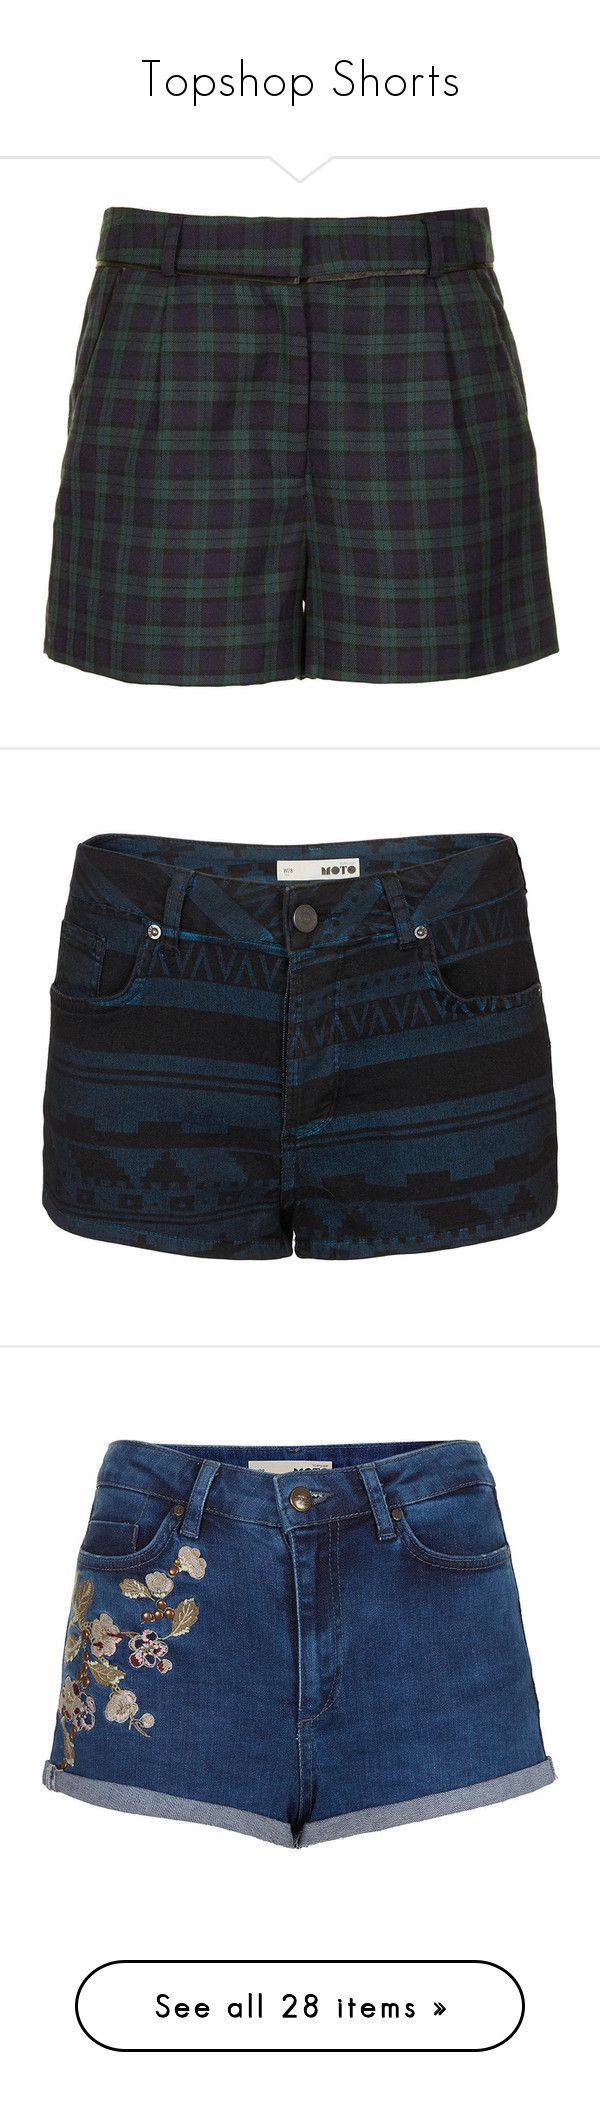 """""""Topshop Shorts"""" by annesuniverse on Polyvore featuring shorts, bottoms, topshop, pants, short, green, topshop shorts, checked shorts, green shorts and short shorts"""